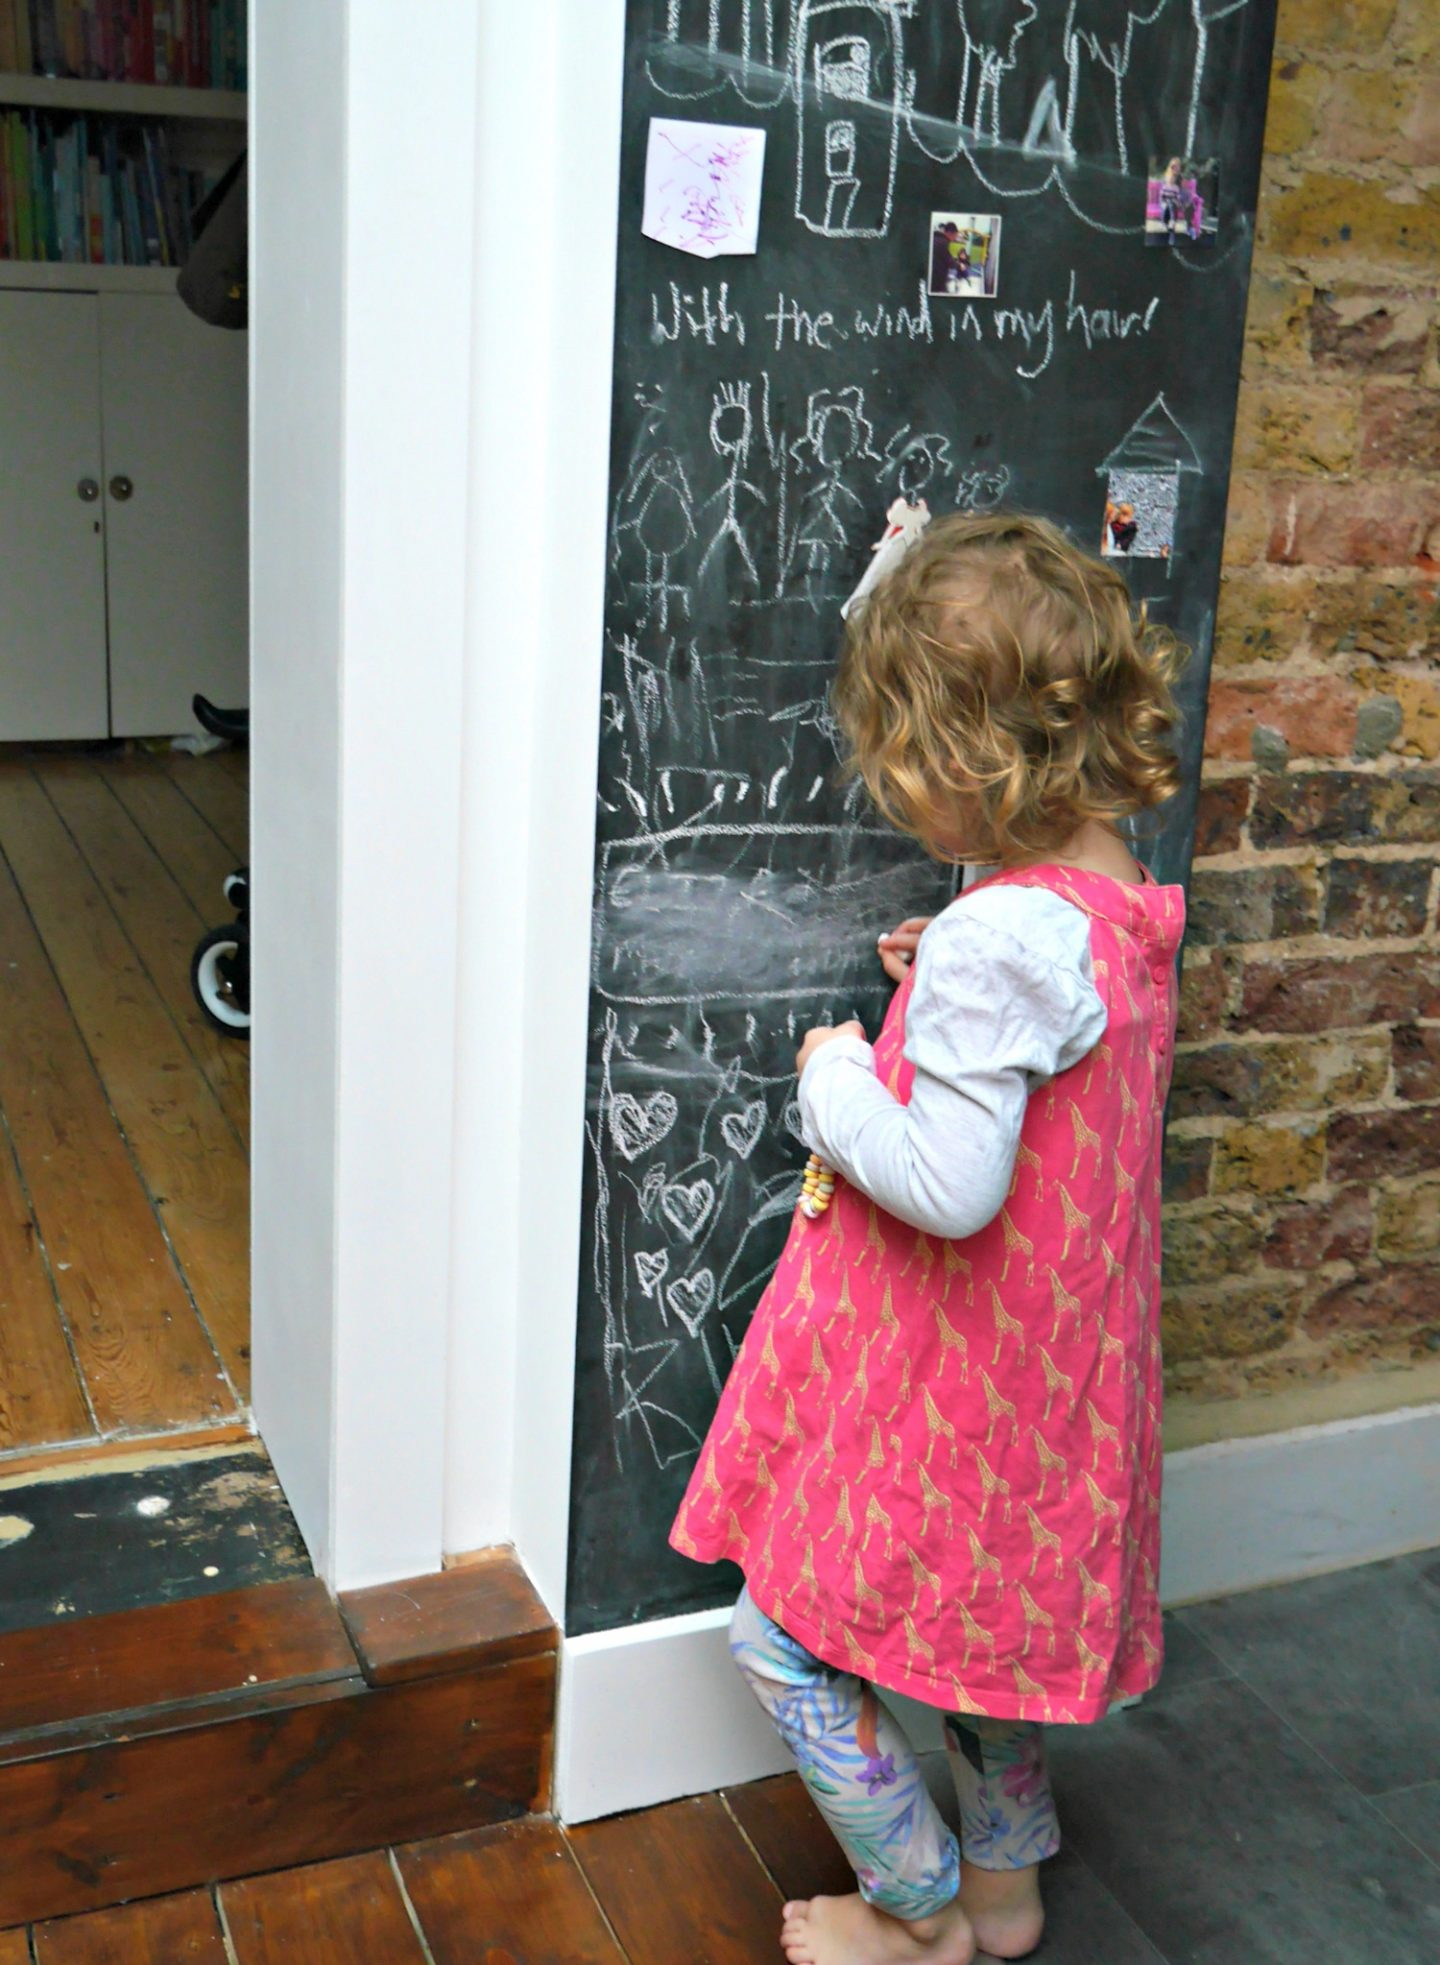 Magnetic chalkboard walls in kitchens, with exposed brick